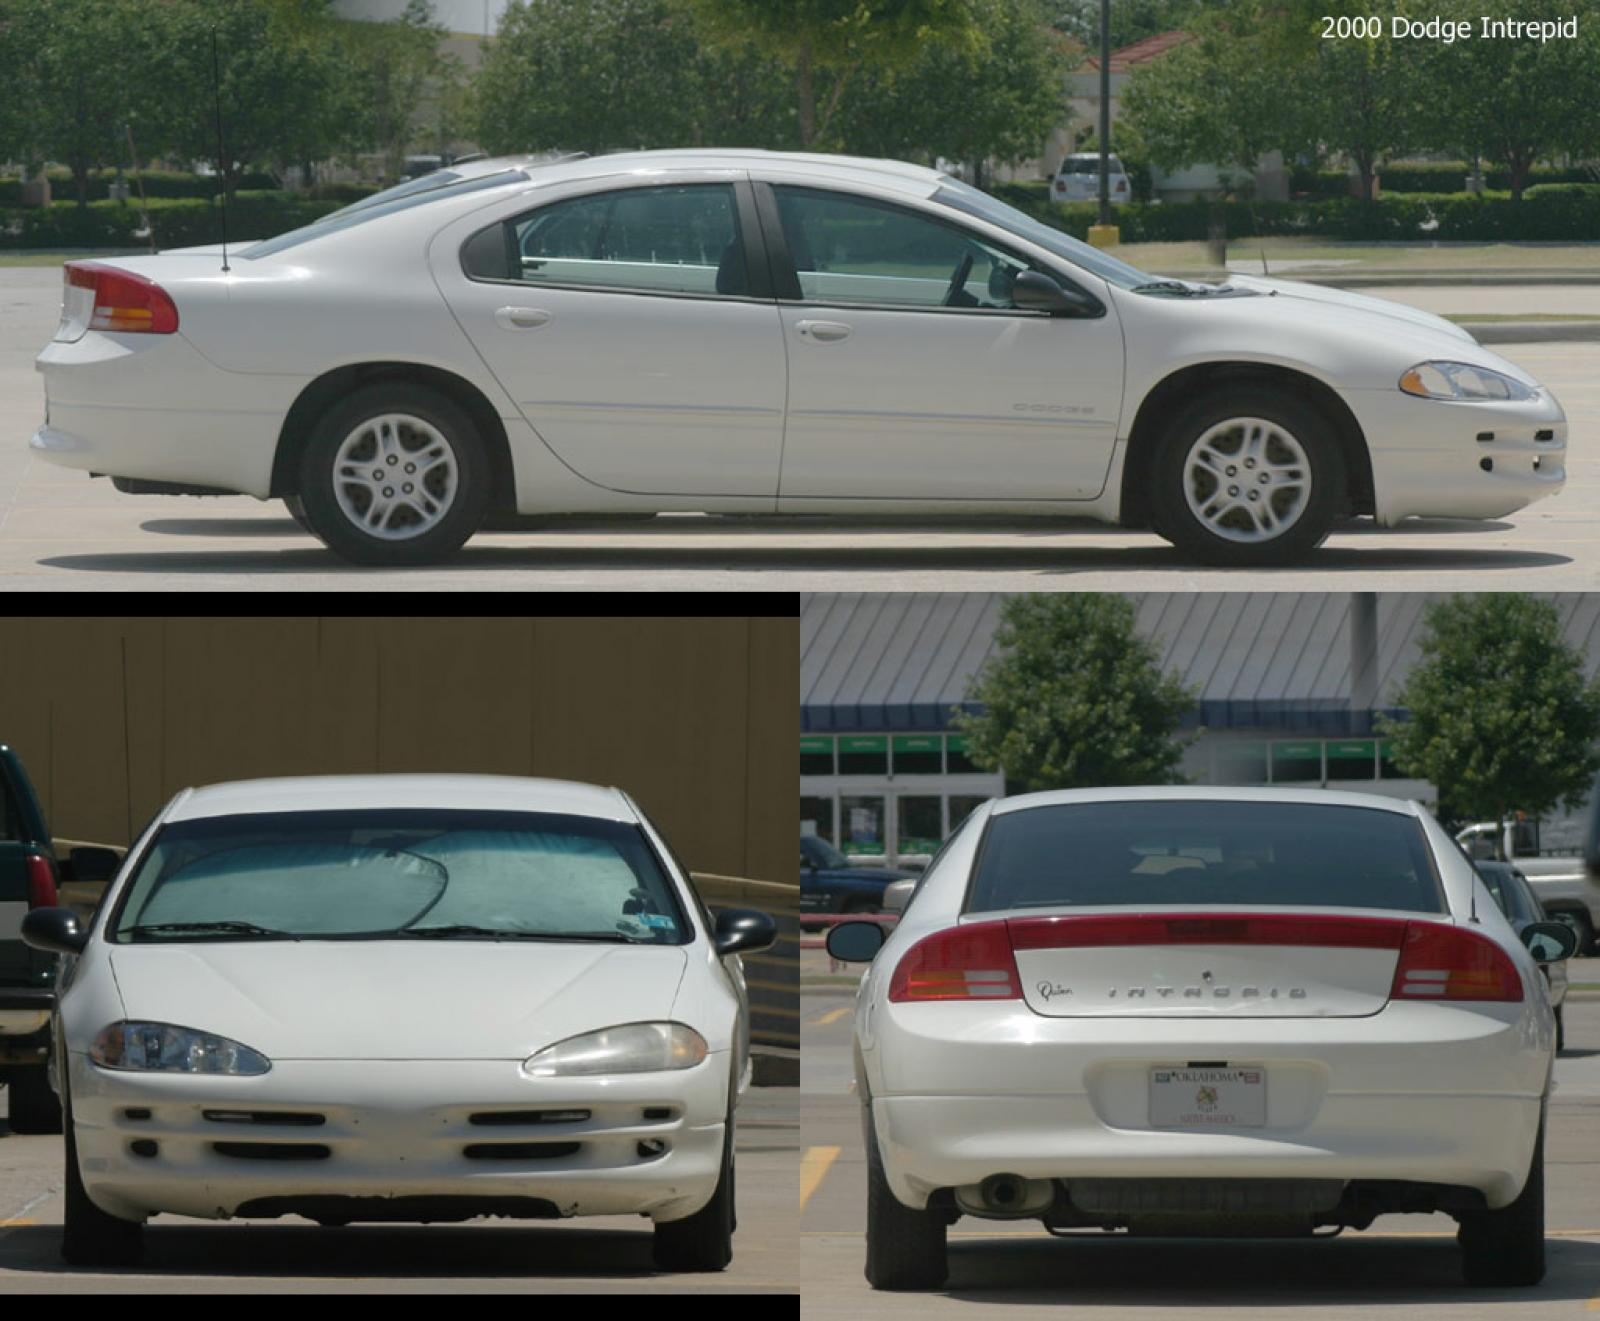 dodge intrepid blueprints pictures to pin on pinterest